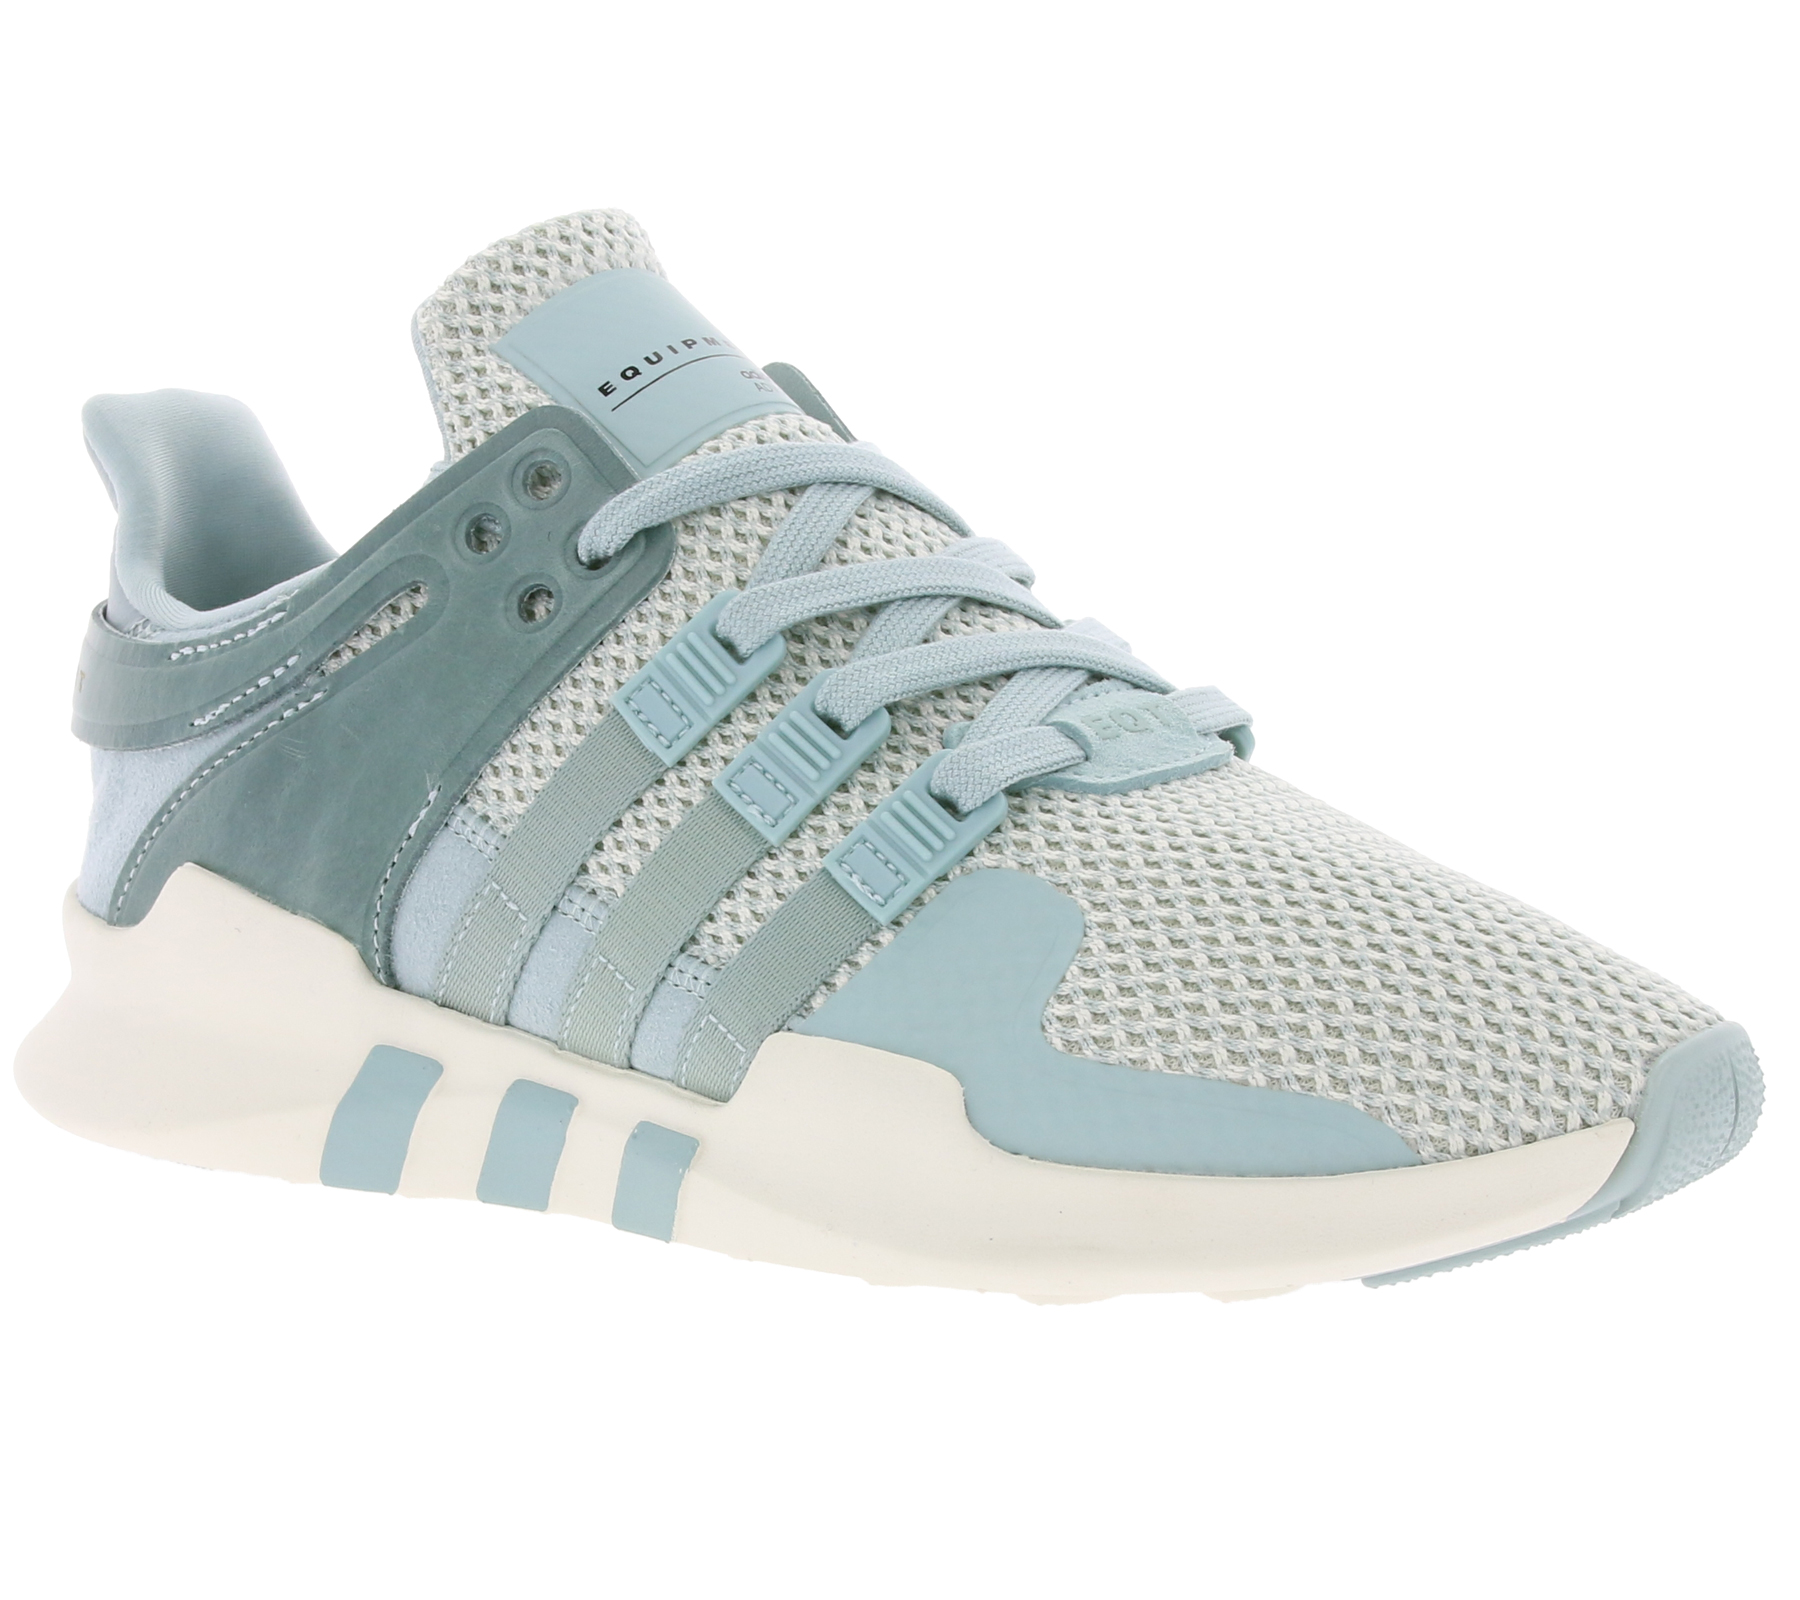 new products 1e176 a91a6 adidas damen sneaker